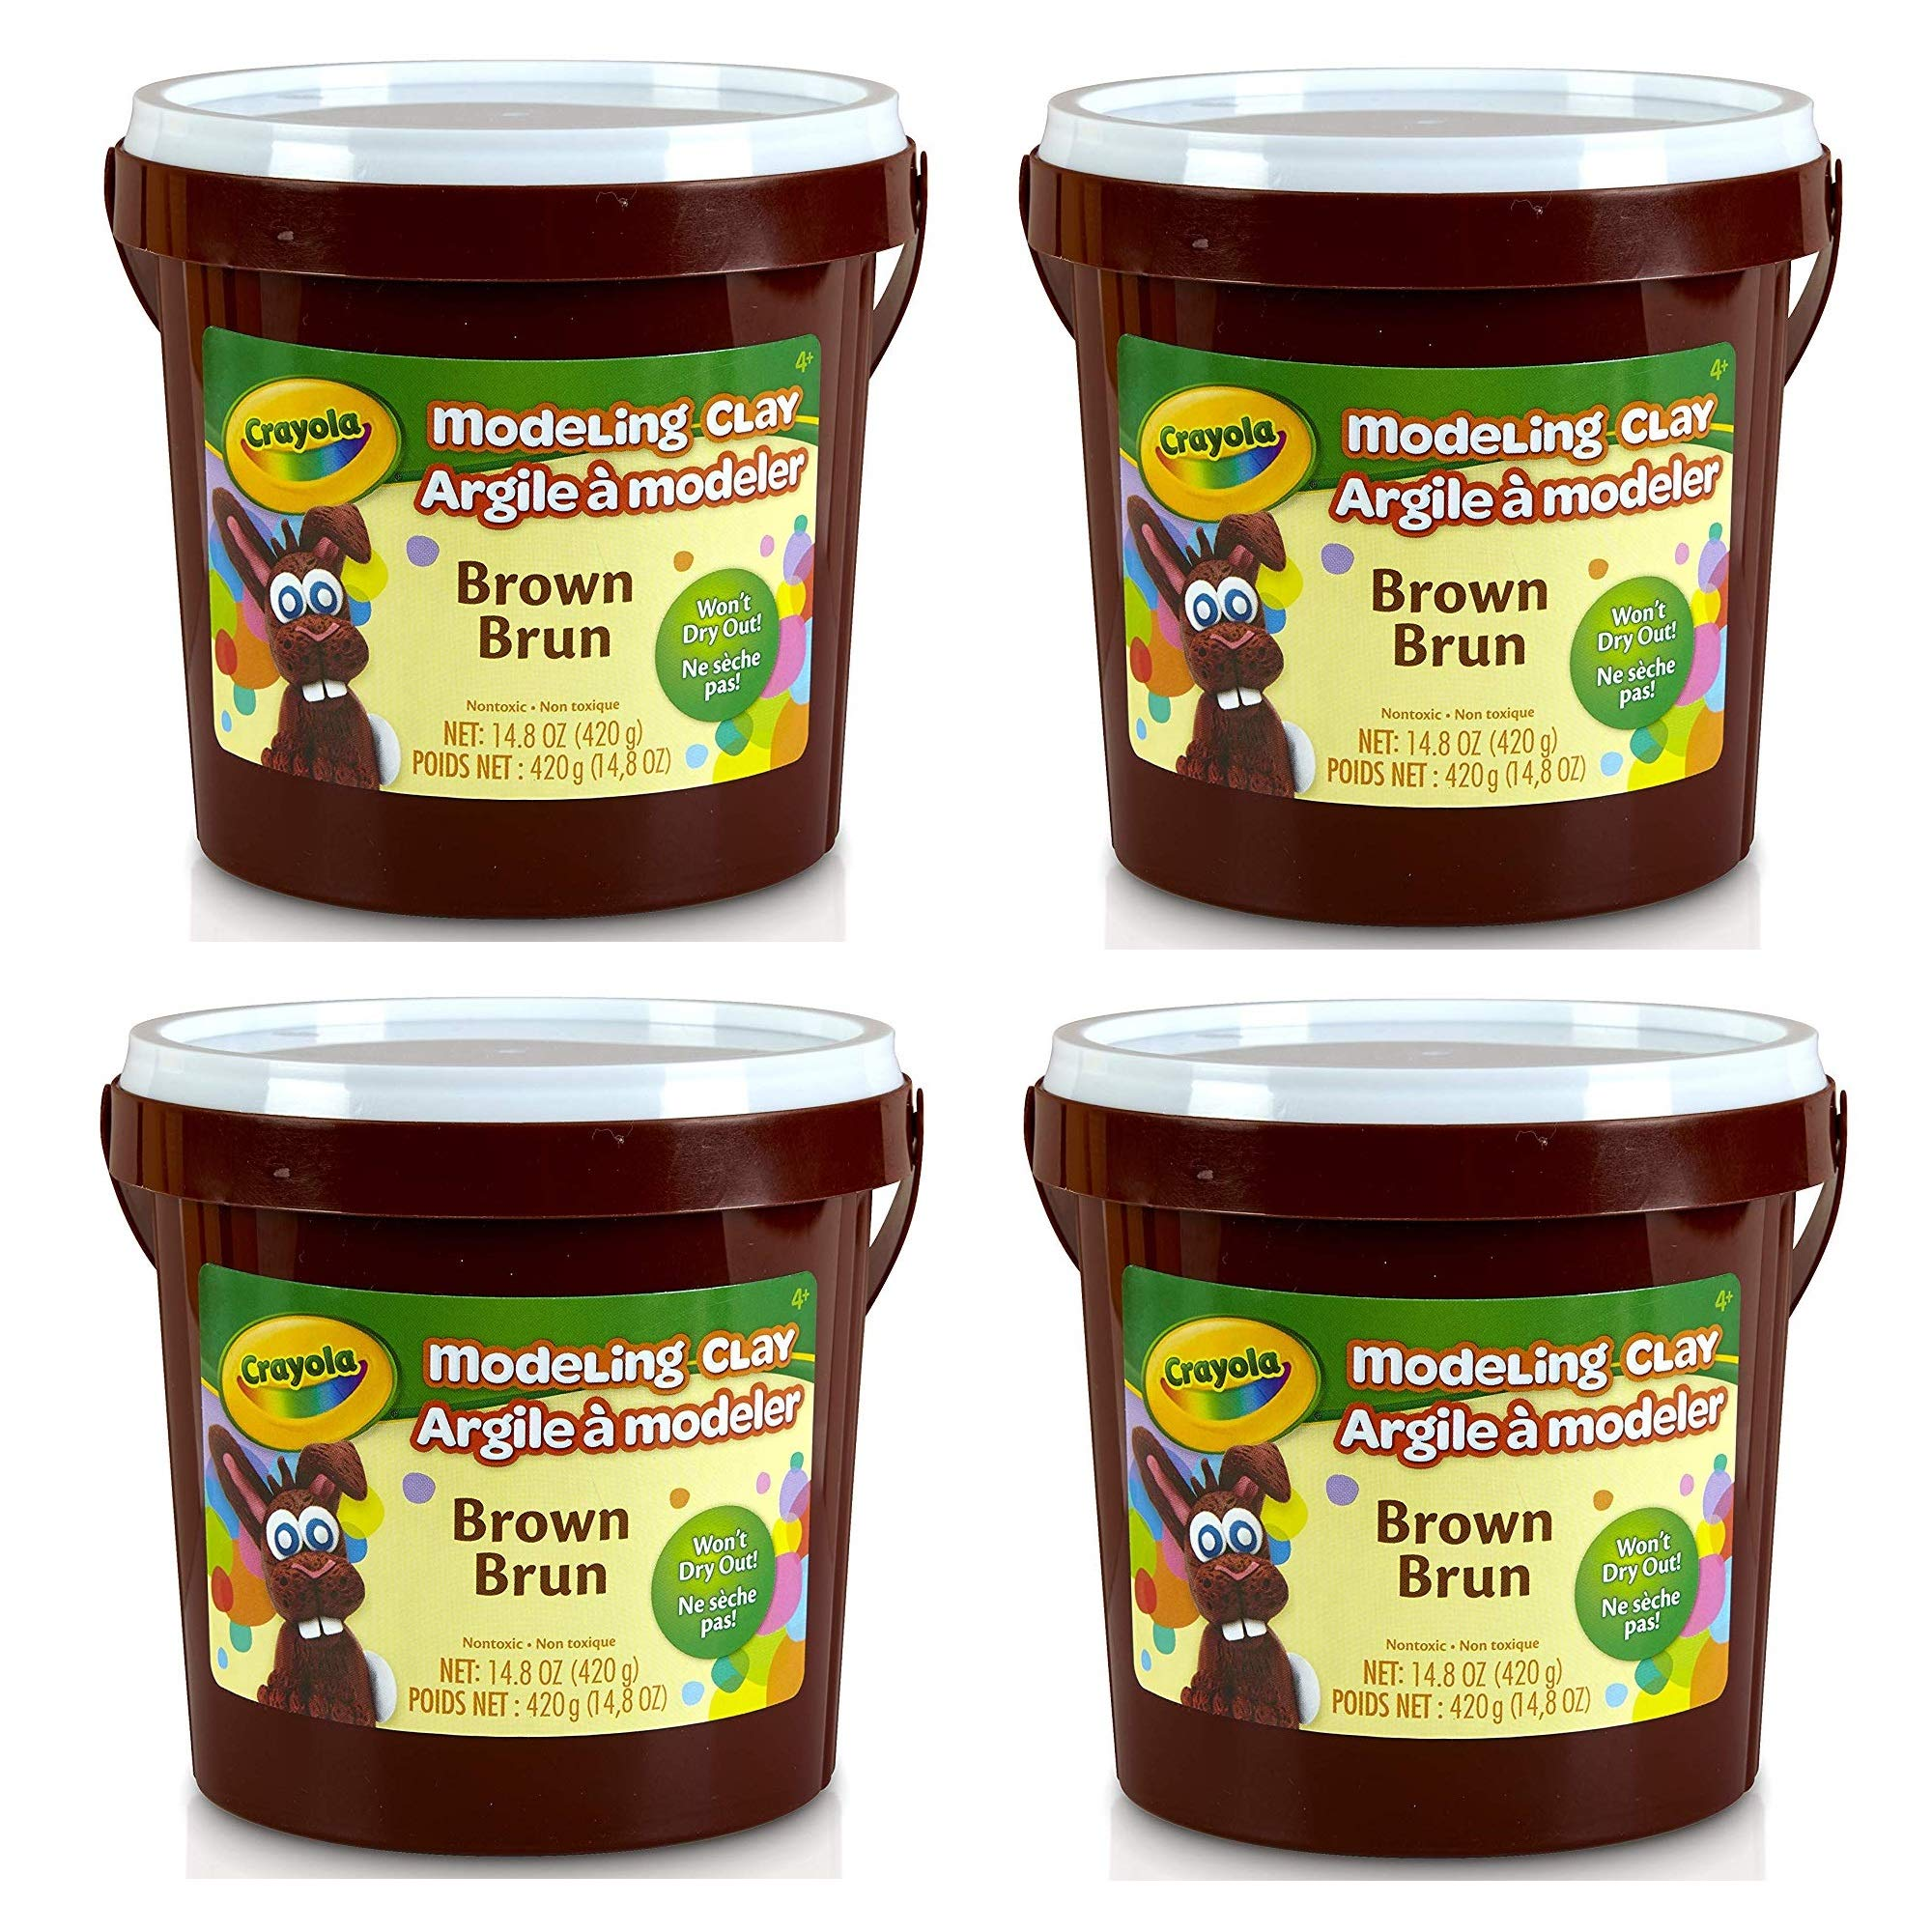 Crayola Modeling Clay, Brown, 14.8 Ounce Resealable Bucket Non-Toxic Art Tool for Kids 4 & Up, Traditional Modeling Clay for Art Projects, Great for Sculpting, Soft Pliable Clay Won't Dry Out, 4 Pack